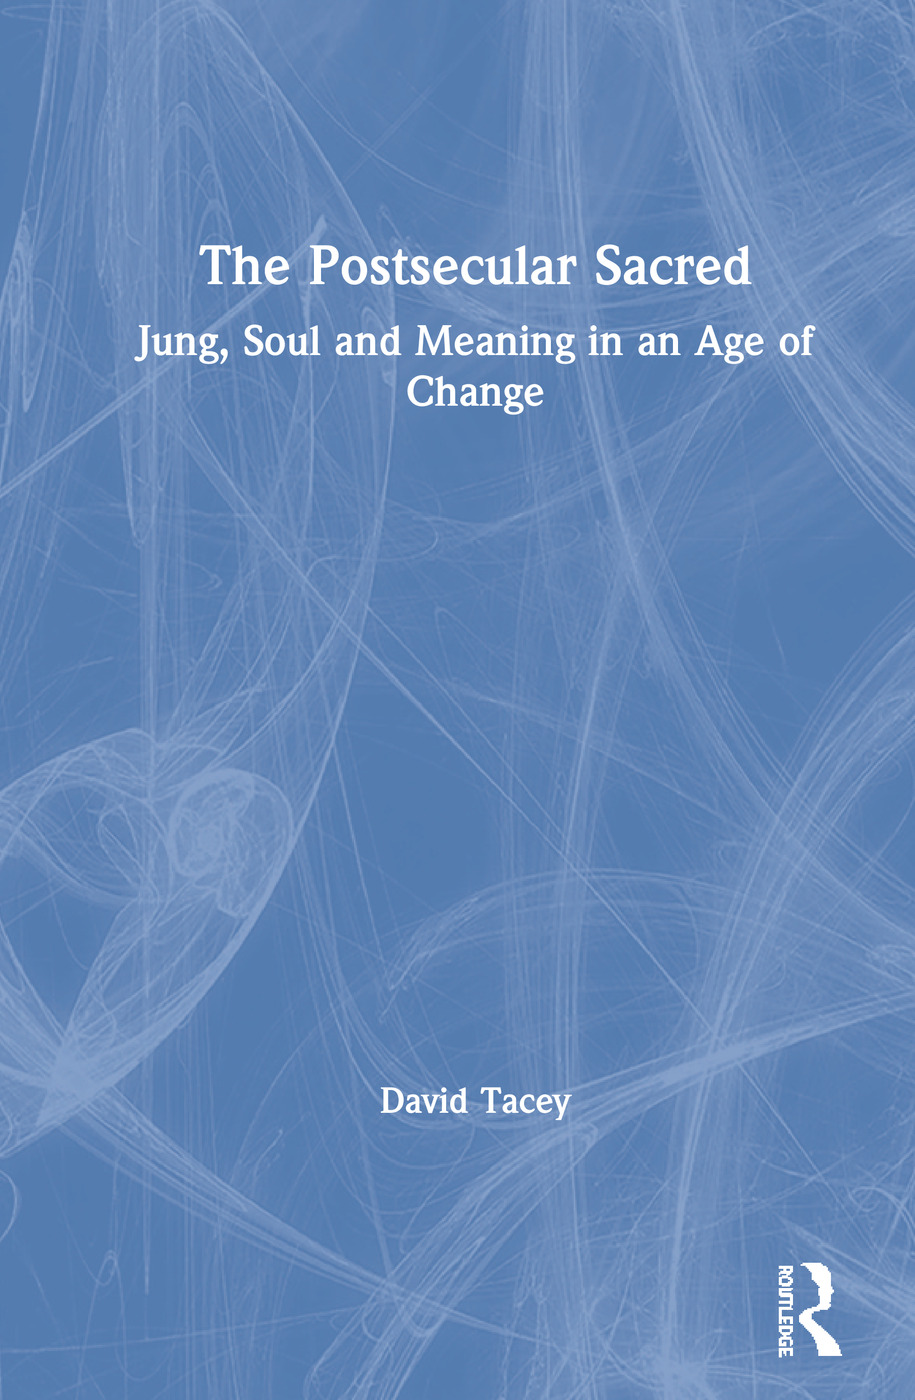 The Postsecular Sacred: Jung, Soul and Meaning in an Age of Change book cover